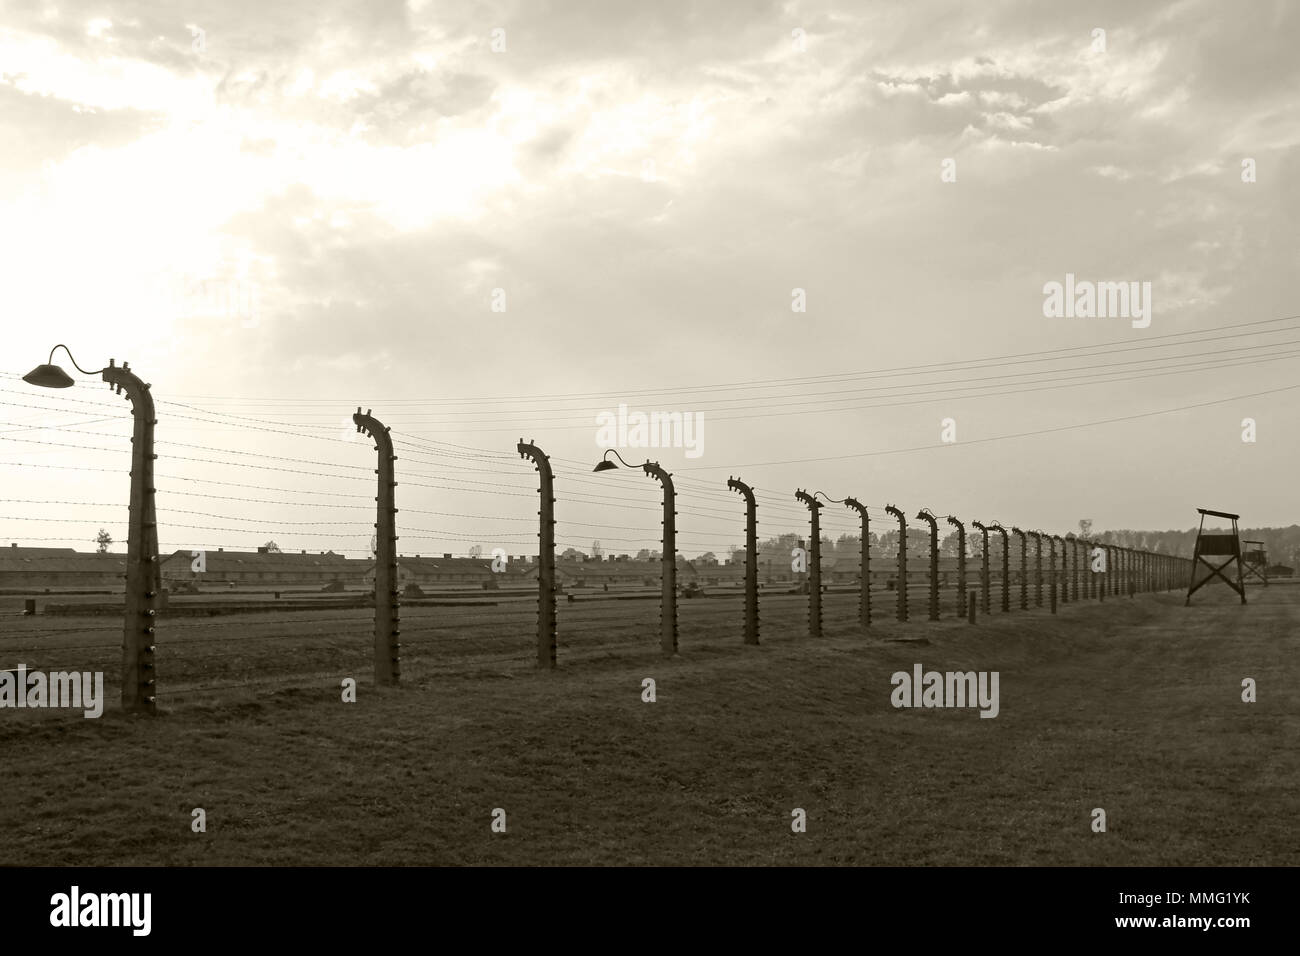 AUSCHWITZ, POLAND, OCTOBER 12, 2013: Fence and watchtower at concentration camp at Auschwitz Birkenau KZ, black white and beige duplex processing photography, Poland - Stock Image